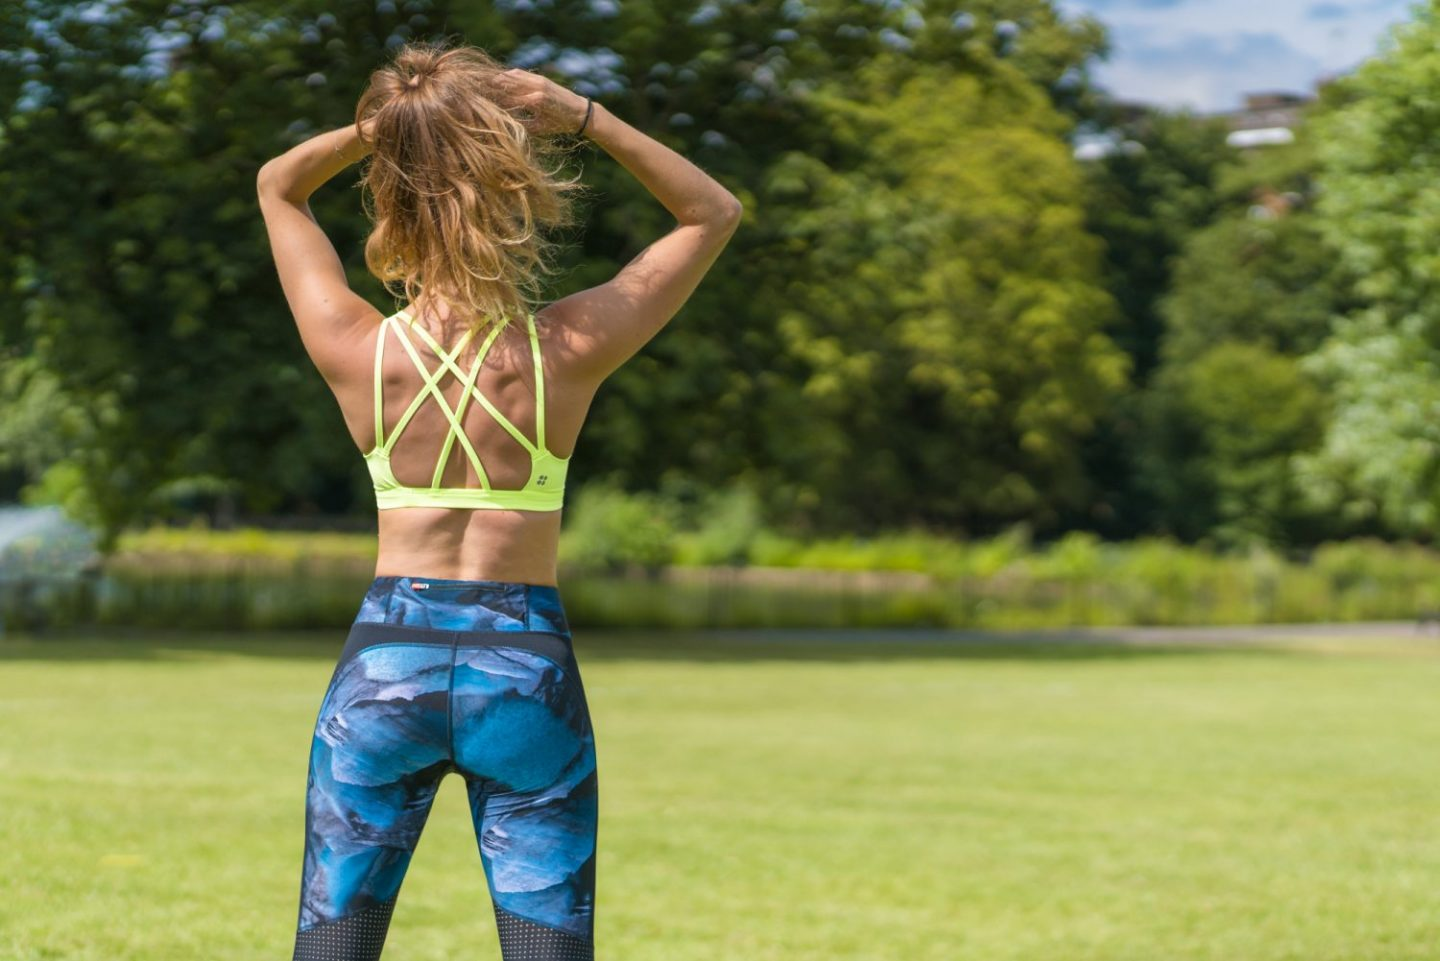 4 REASONS WHY YOU SHOULD TAKE YOUR WORKOUT OUTDOORS